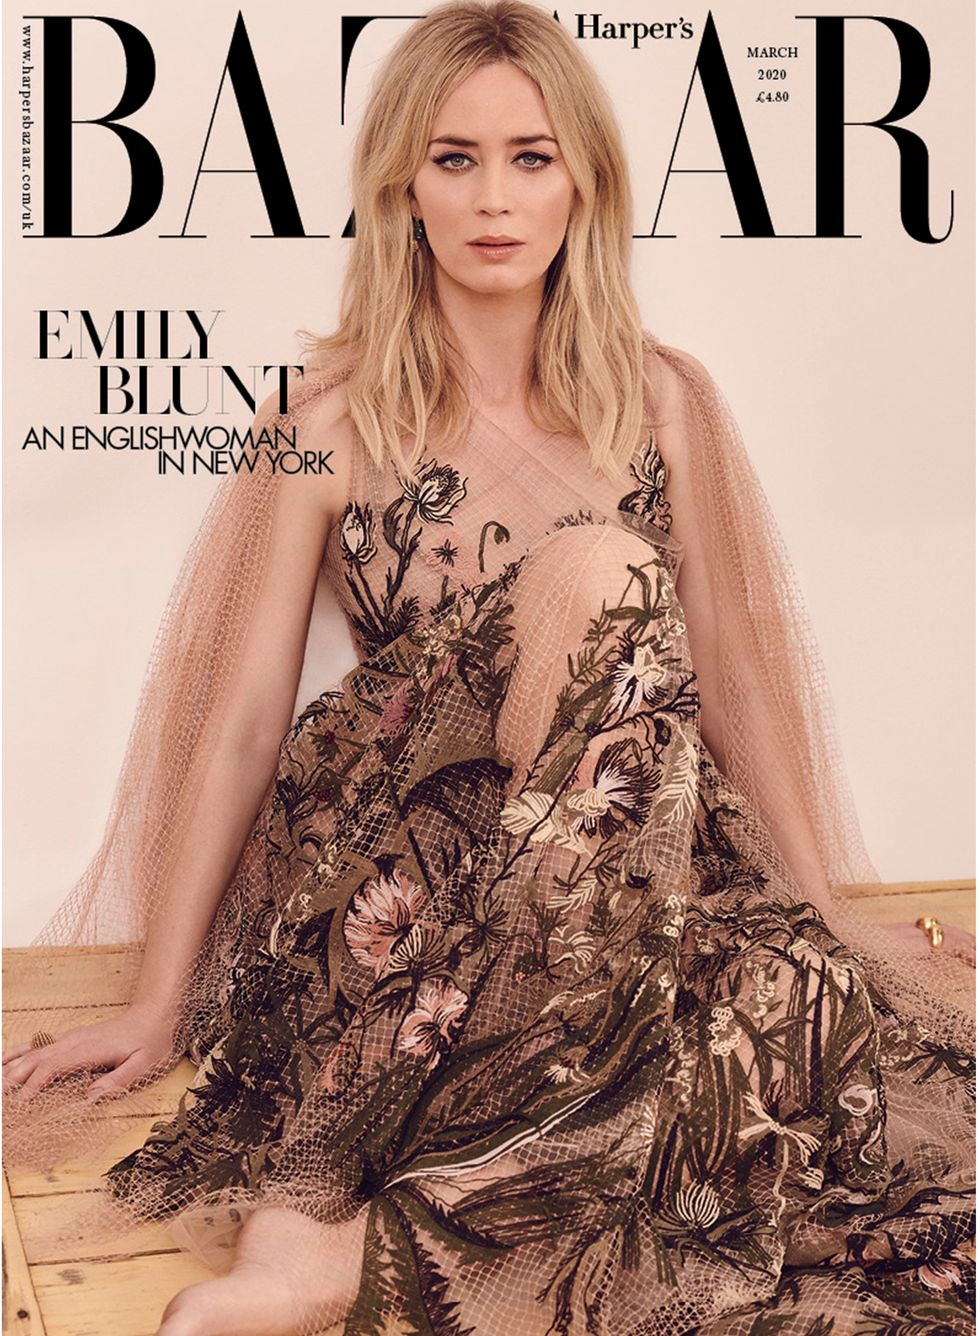 Emily wears Dior dress and Cartier jewellery on the subscriber cover